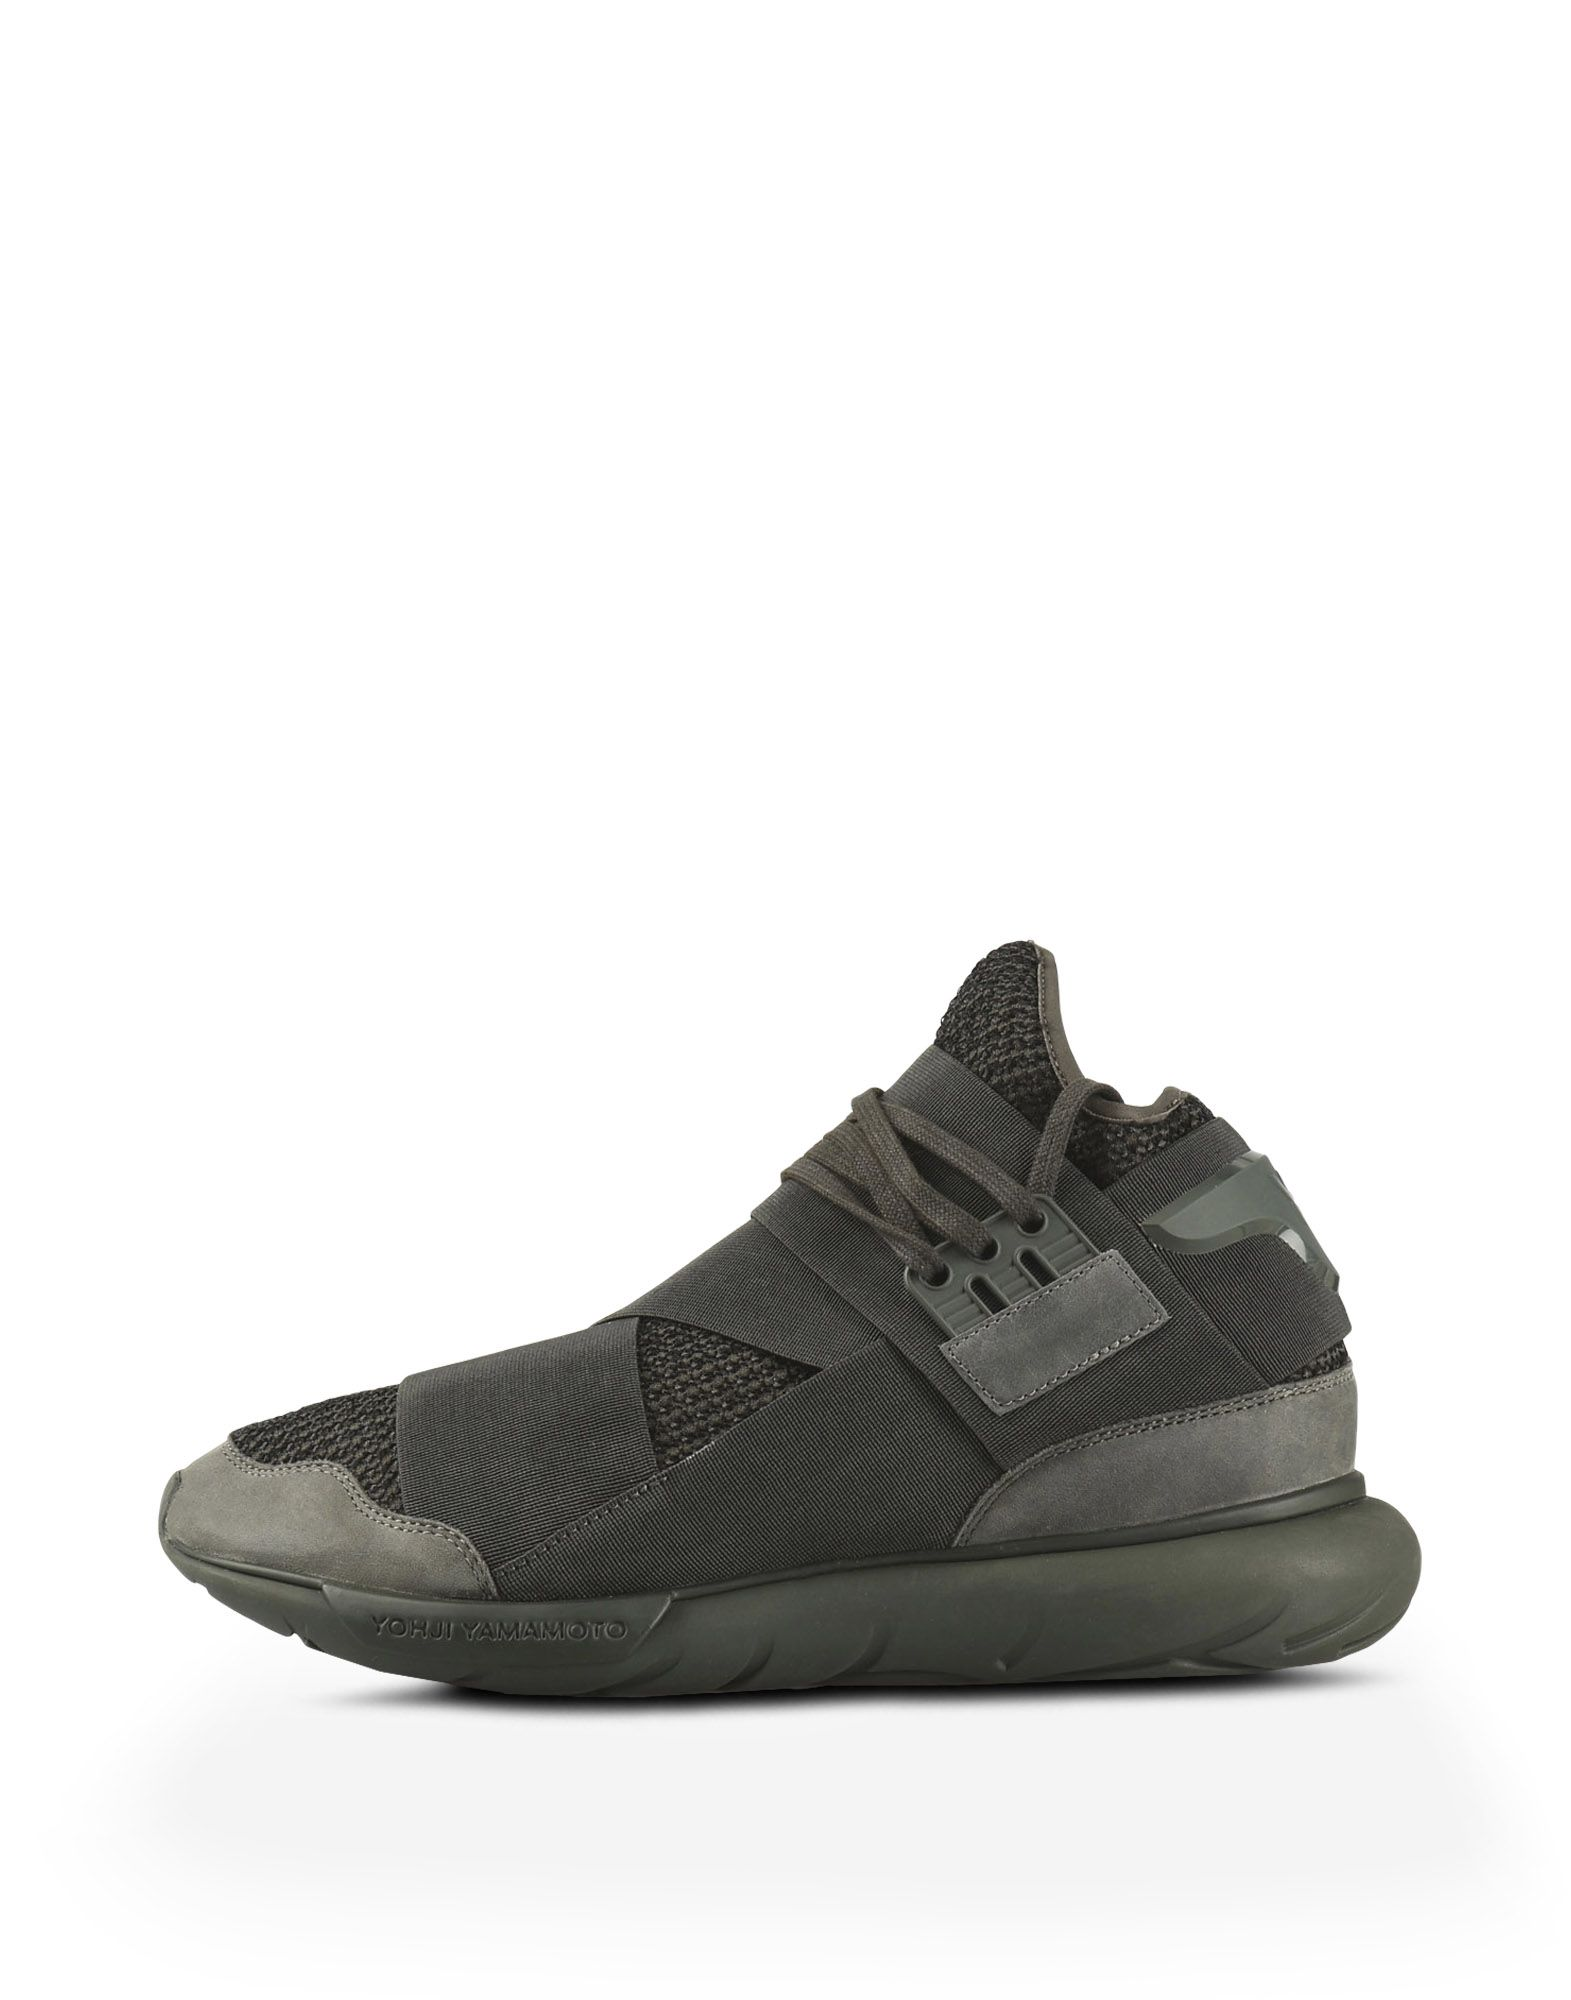 Y-3 'Qasa High' sneakers discount high quality cheap sale new arrival pay with paypal cheap online sale footlocker pictures outlet from china iEBXm6aqcY